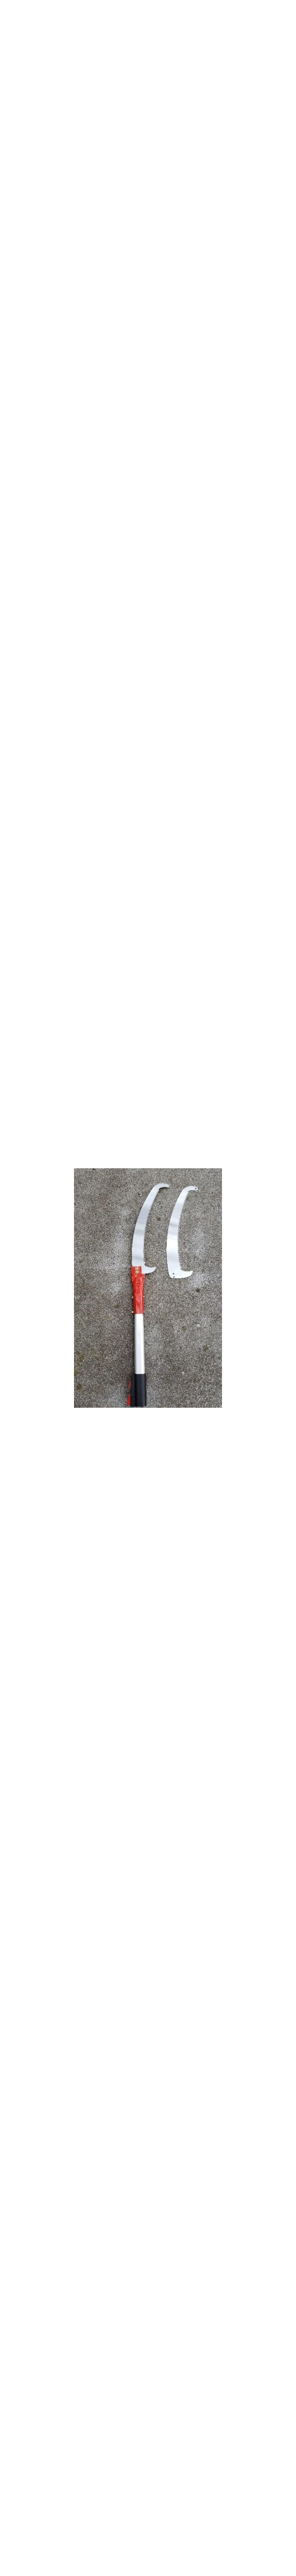 telescopic pole saw, pole pruning saw, pole saw